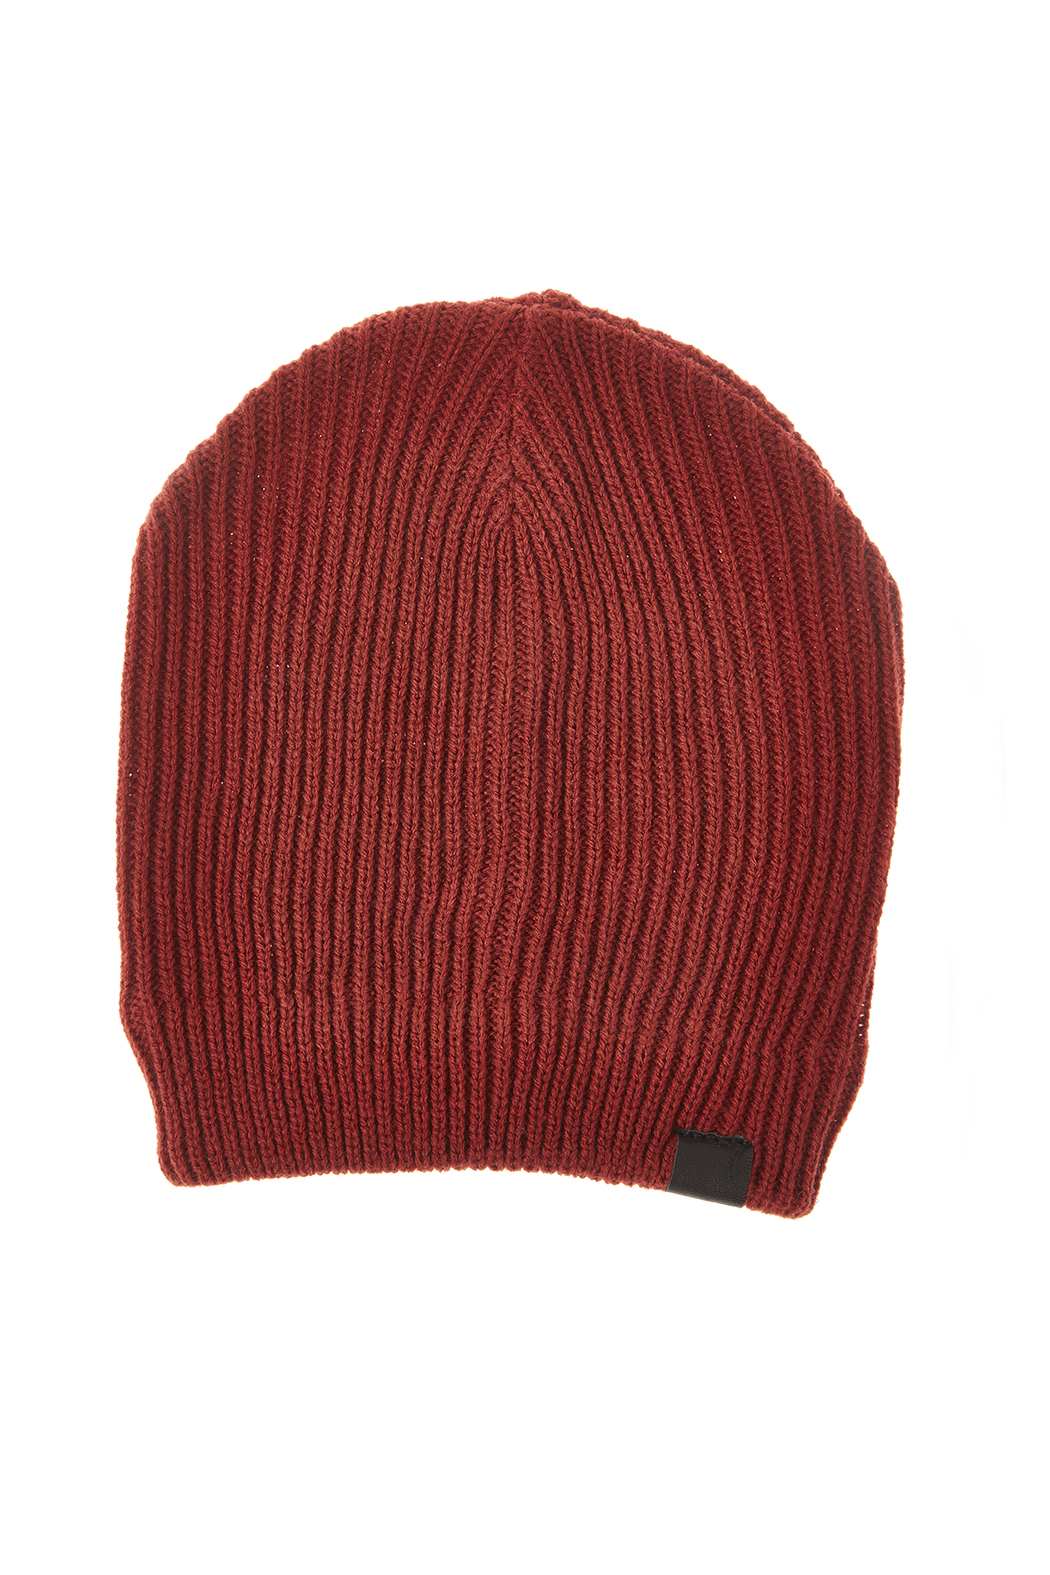 Fort Greene General Store Knit Skull Cap - Main Image